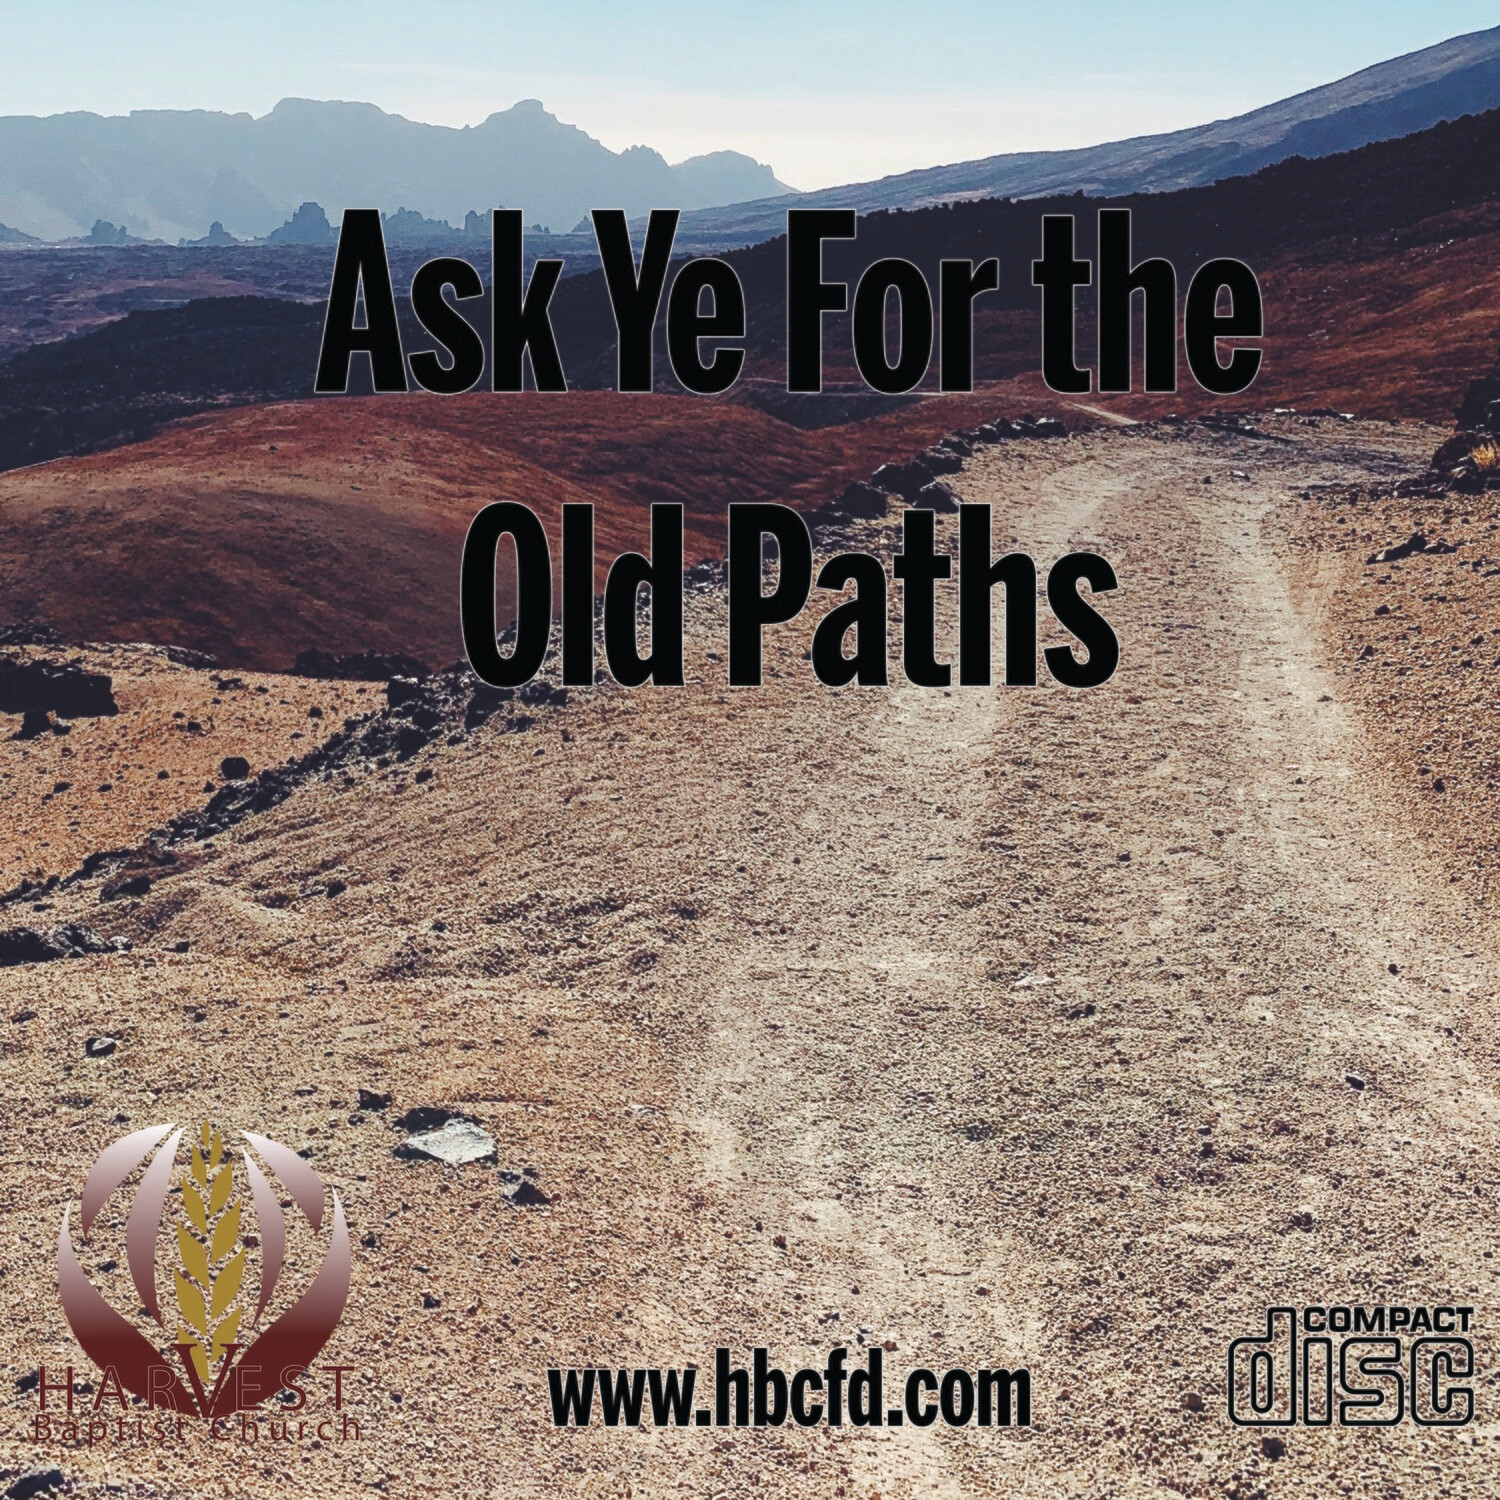 Ask Ye for the Old Paths